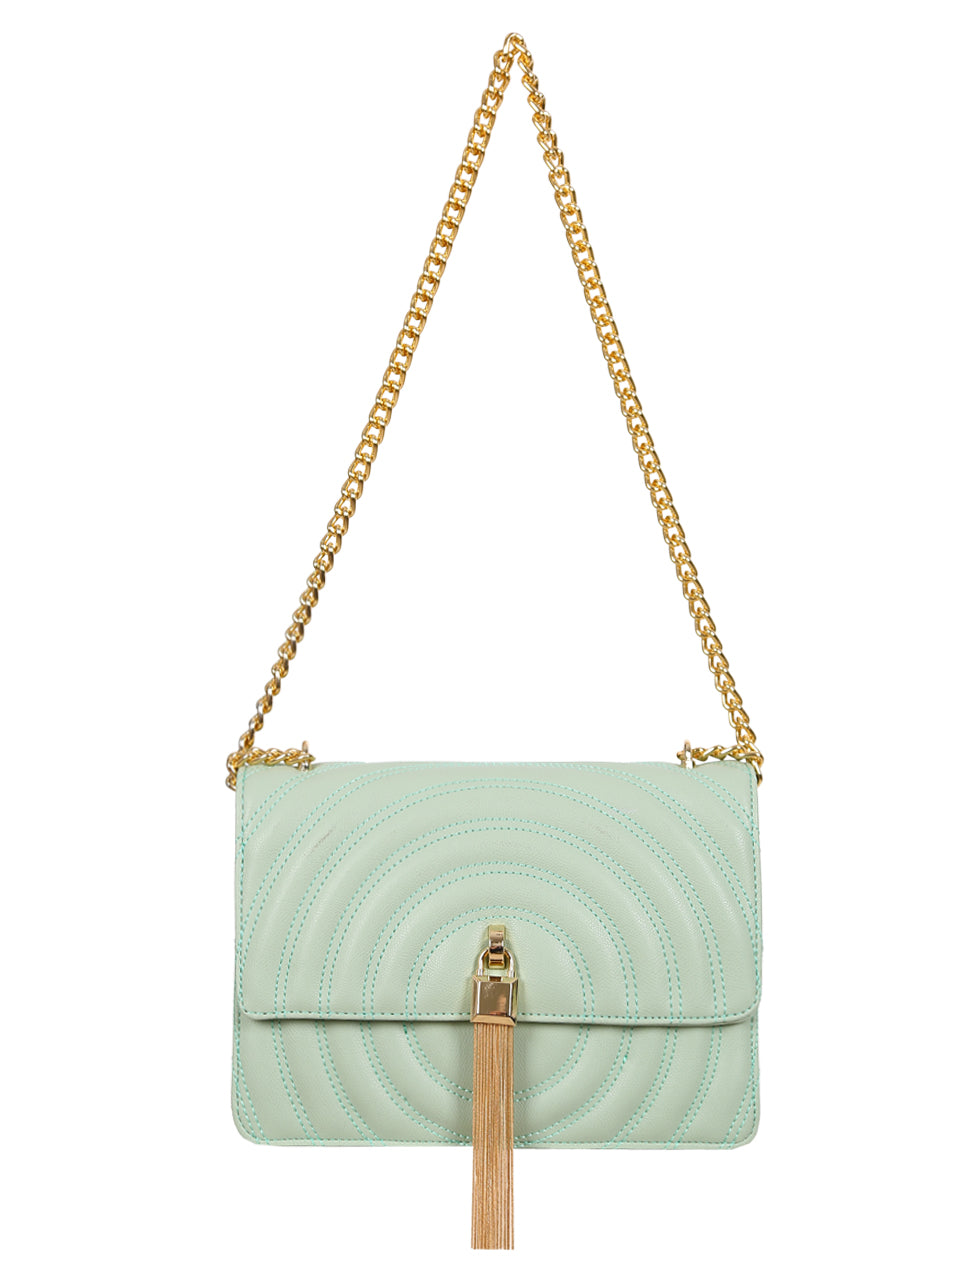 Mademoiselle Polly Shoulder Bag - Green